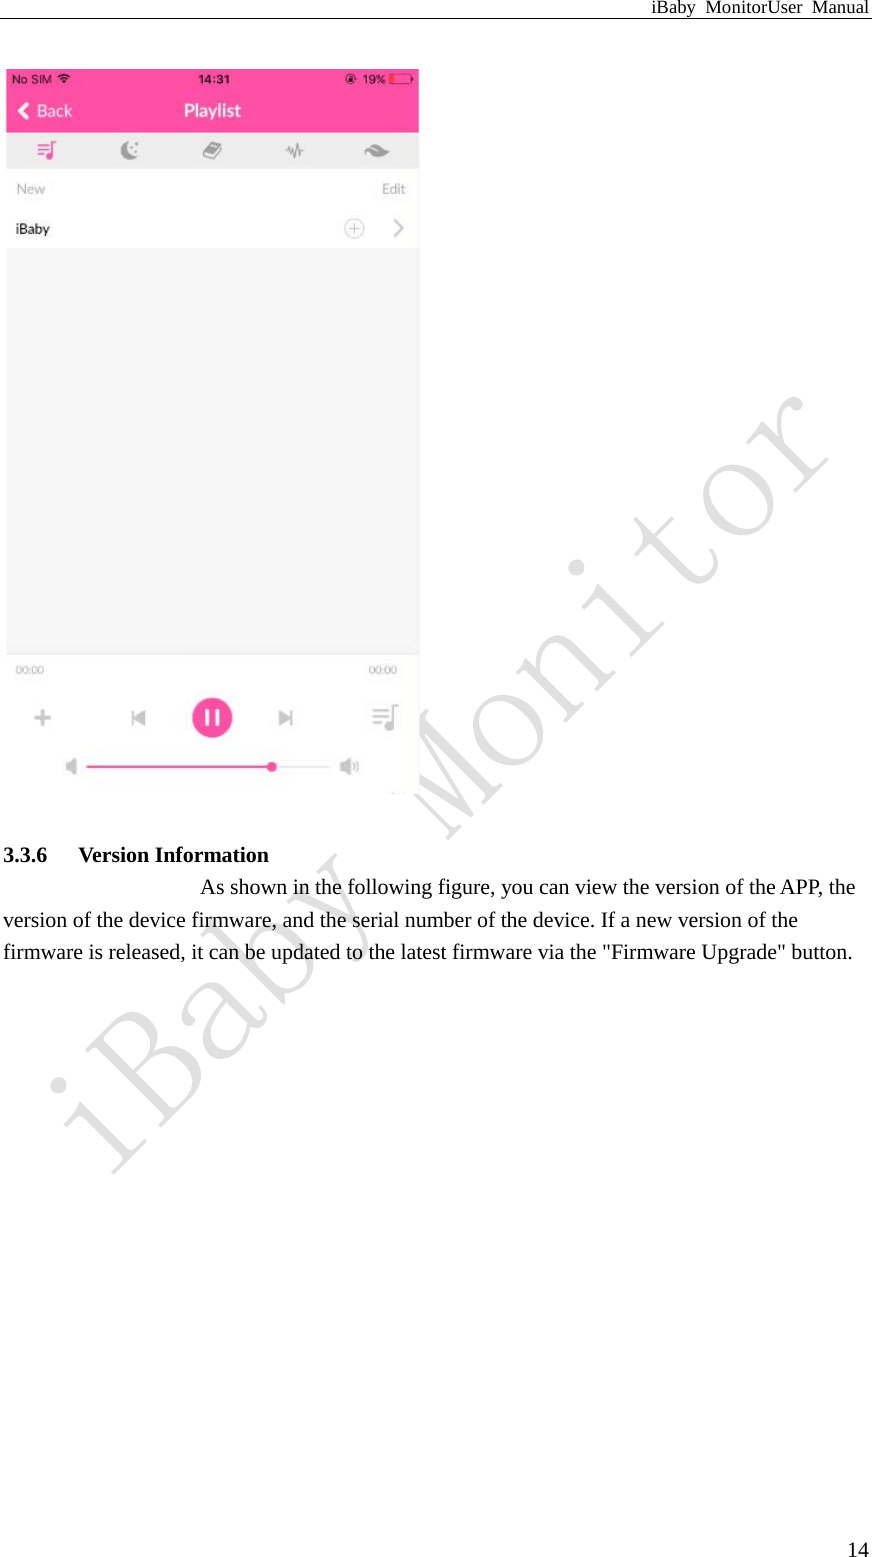 """iBaby MonitorUser Manual  14   3.3.6 Version Information As shown in the following figure, you can view the version of the APP, the version of the device firmware, and the serial number of the device. If a new version of the firmware is released, it can be updated to the latest firmware via the """"Firmware Upgrade"""" button."""